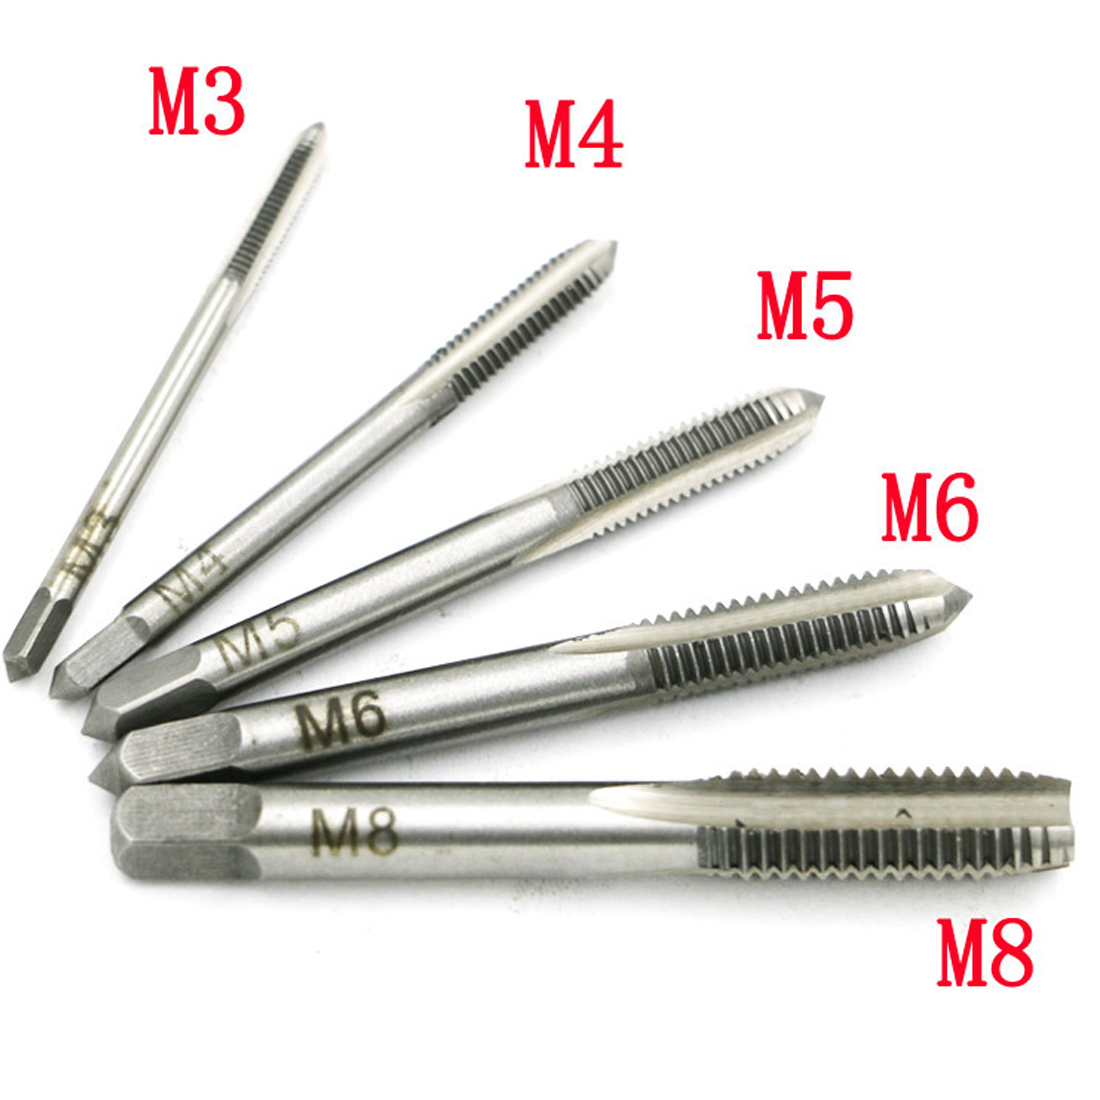 6 x High Speed HSS Machine Screw Thread Metric Plug Hand Tap Drill Bits New LA